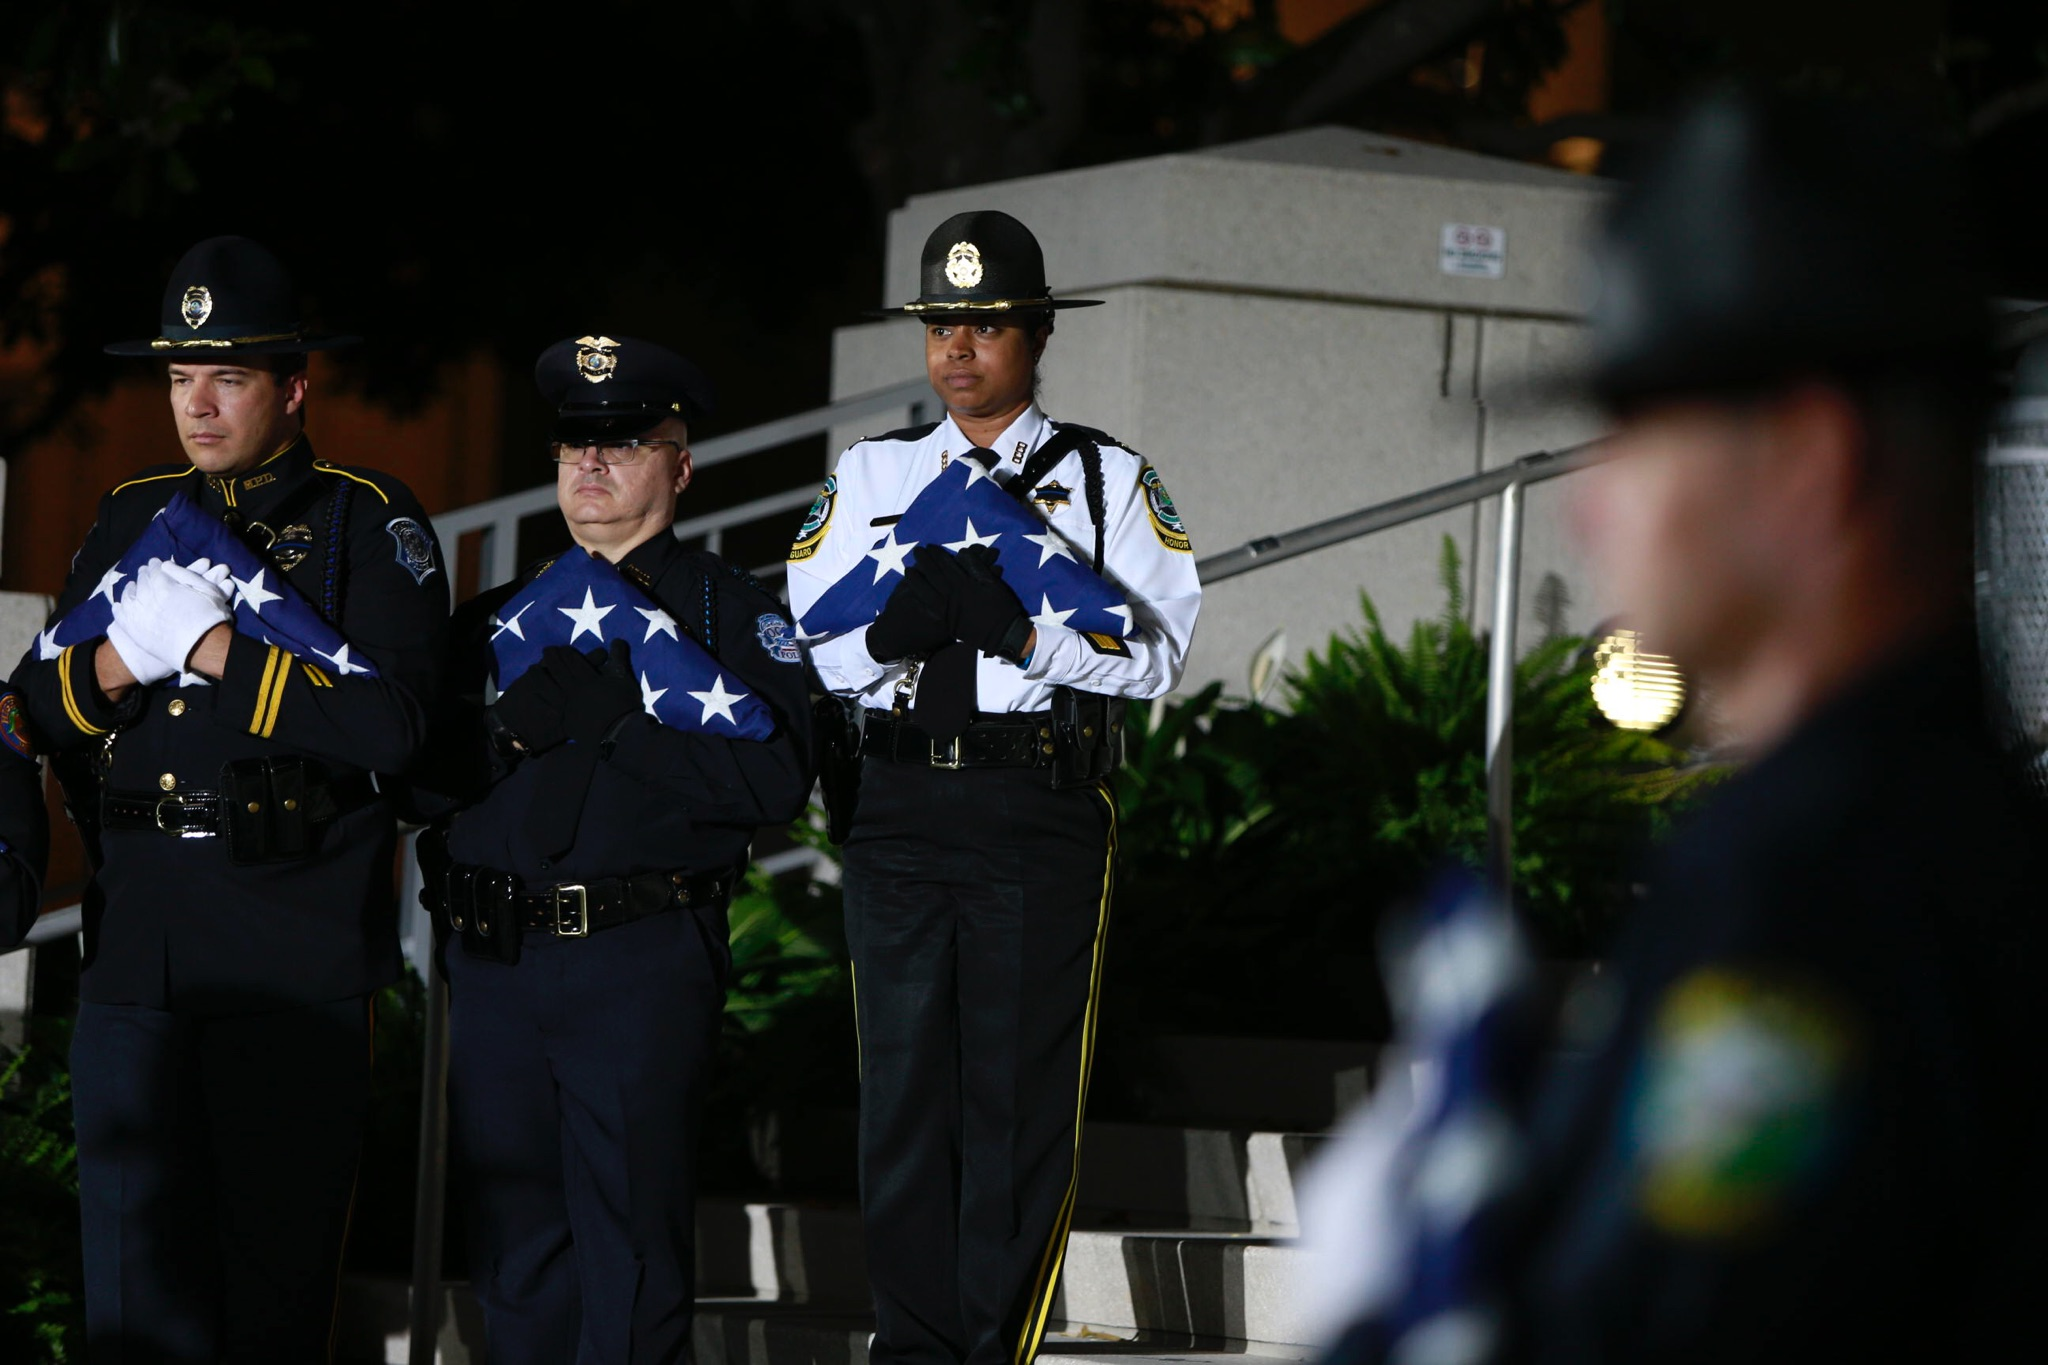 Law enforcement officers on a stage holding triangular folded flags